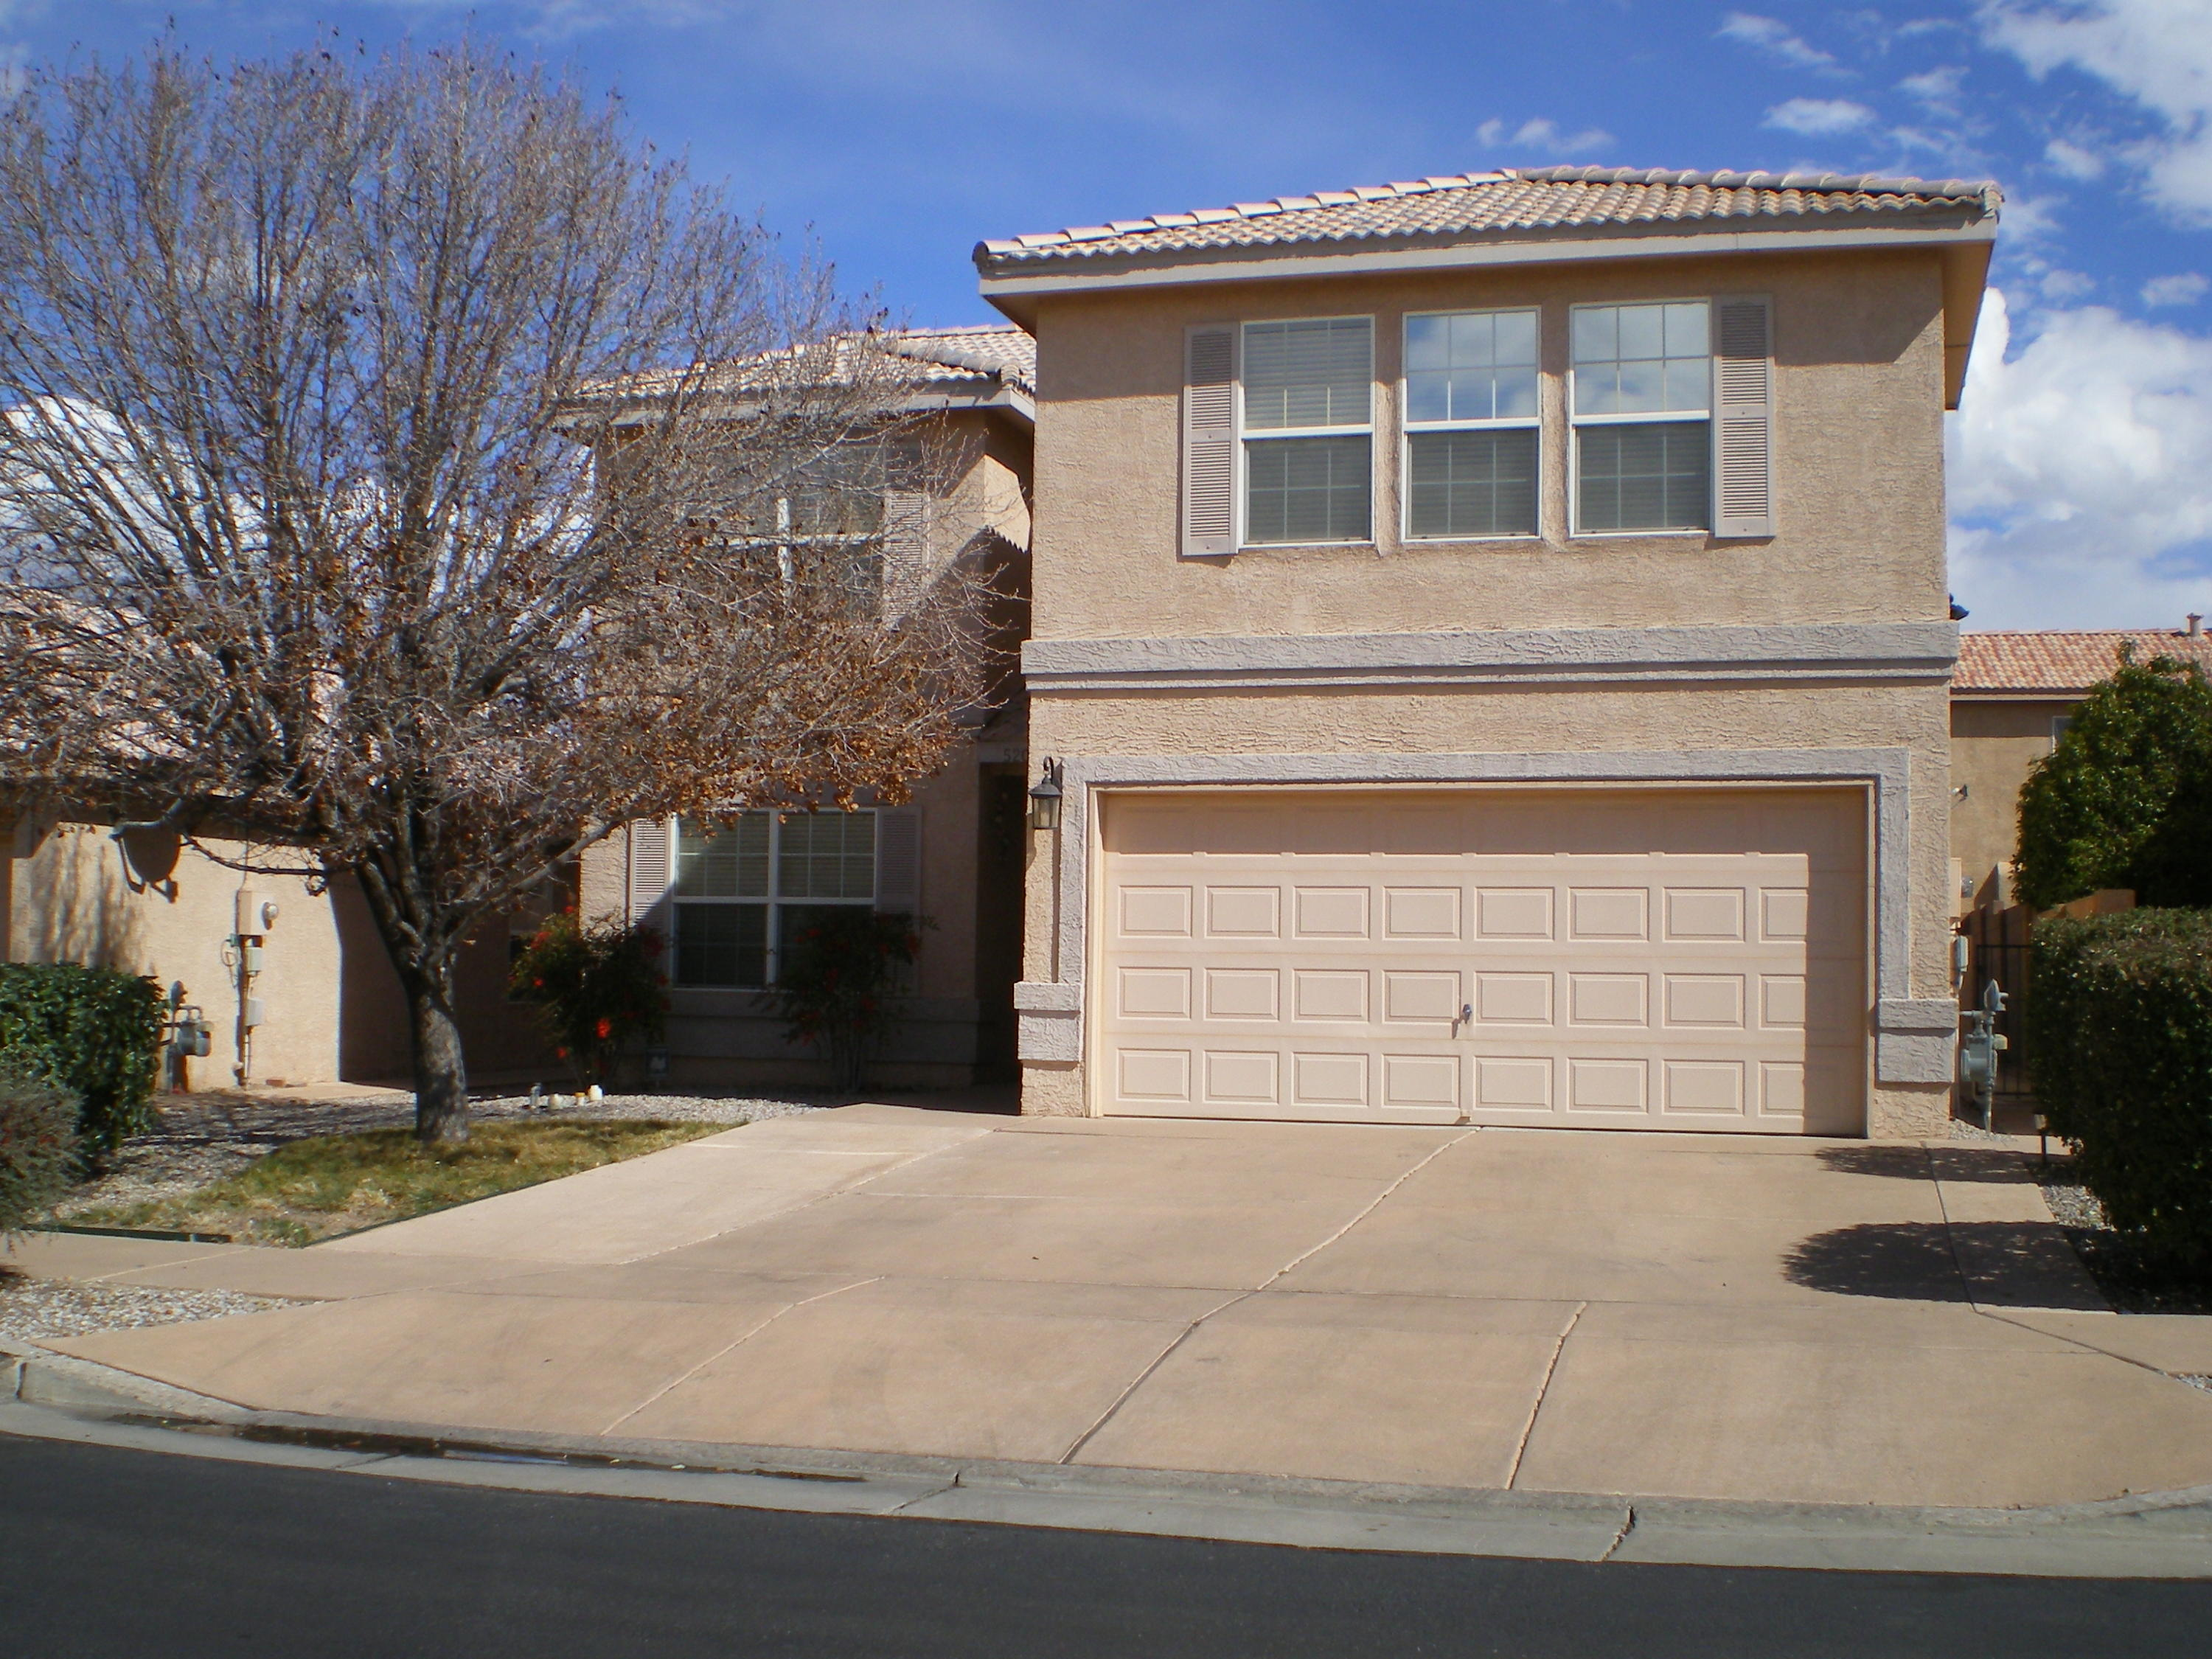 An immaculate,,like new spacious home,, in gated Encanto village. Living room,large den,fire place,,great kitchen,tile floors. Great master suite,jacuzzi tub,walk-in closet,Nice sized bedrooms,loft area.Solar equipped for elec. efficency!covered patio,landscapped rear yard.This home shines thruout!!